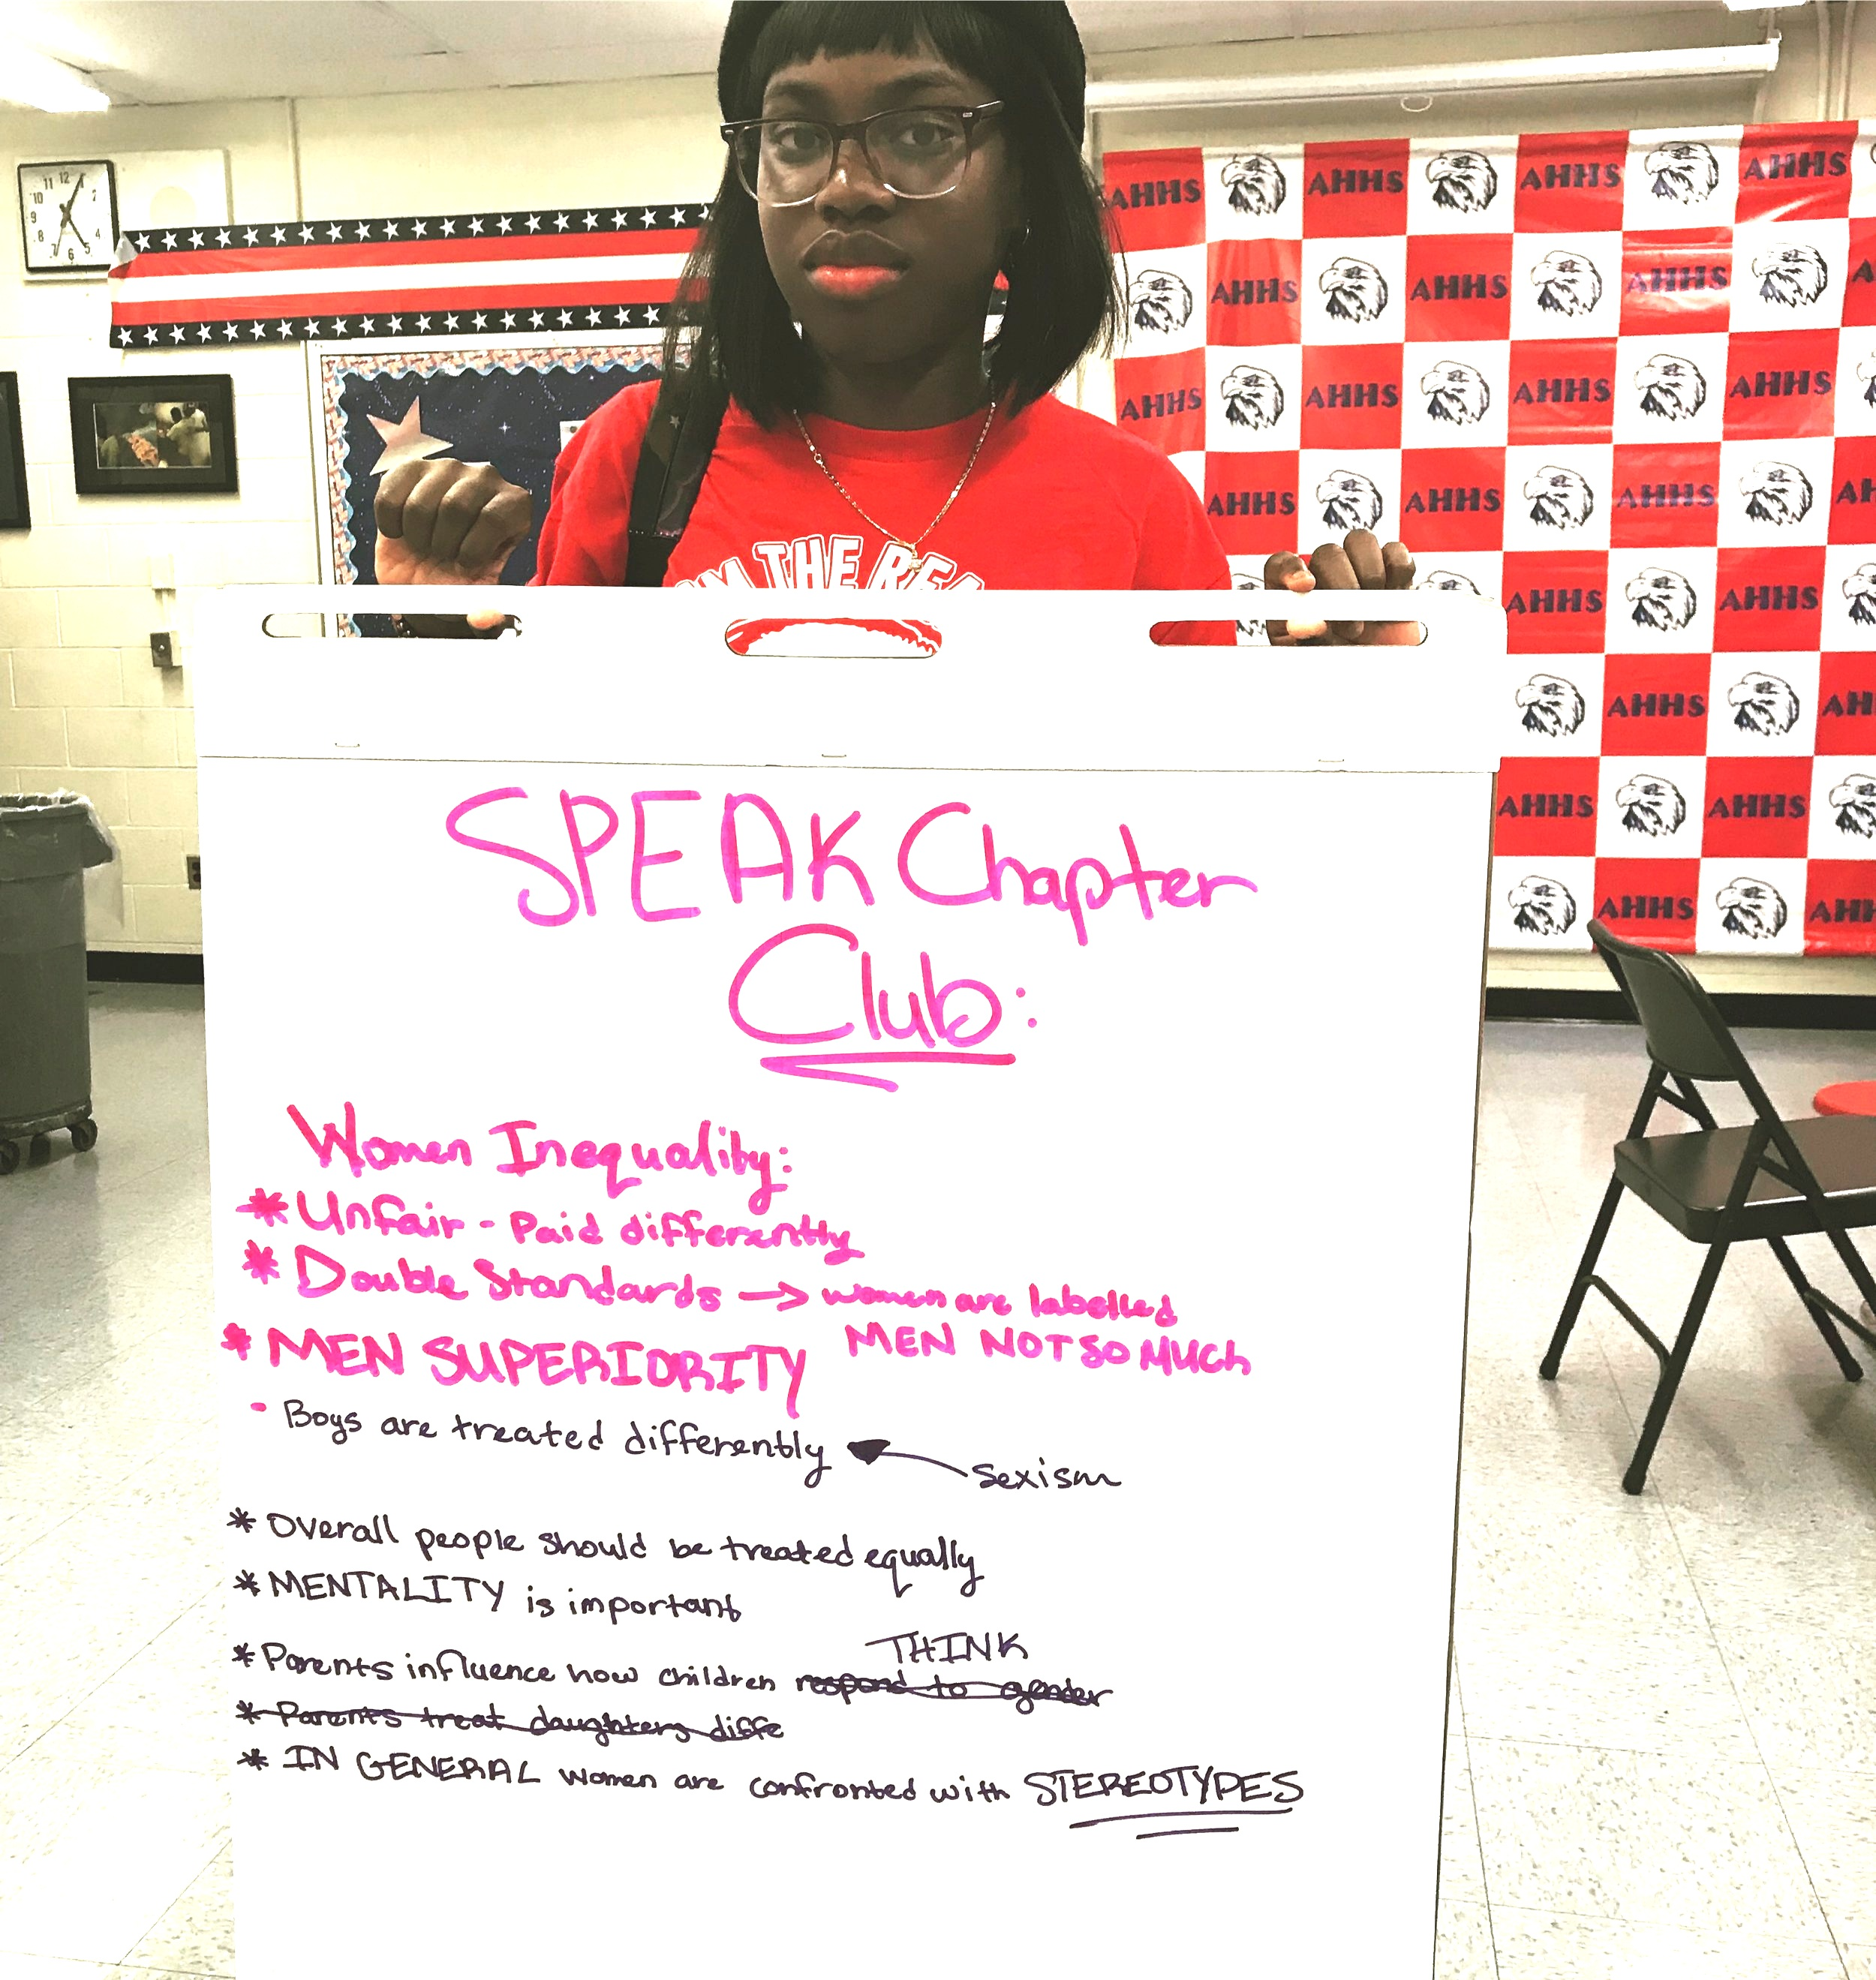 '18 Ambassador, Ayoko, at a high school in Newark, New Jersey, presents the key takeaways from a discussion she led at her SPEAK Chapter Club around issues facing women.